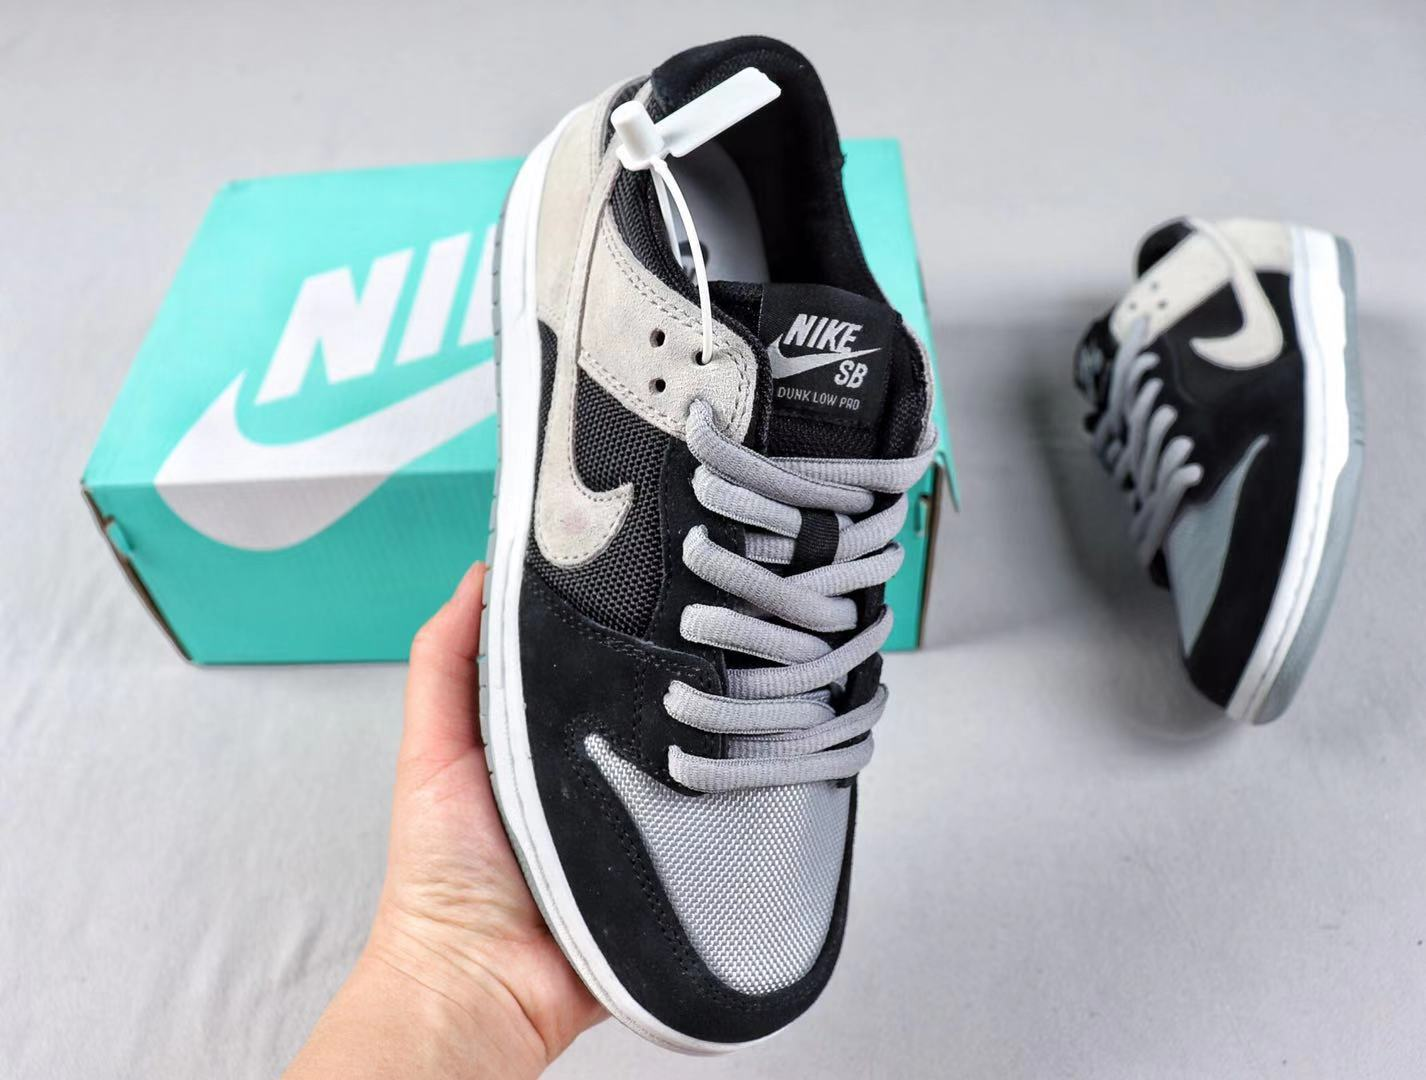 Nike SB Dunk Low Black/Wolf Grey-White Sneakers Hot Selling 854866-001